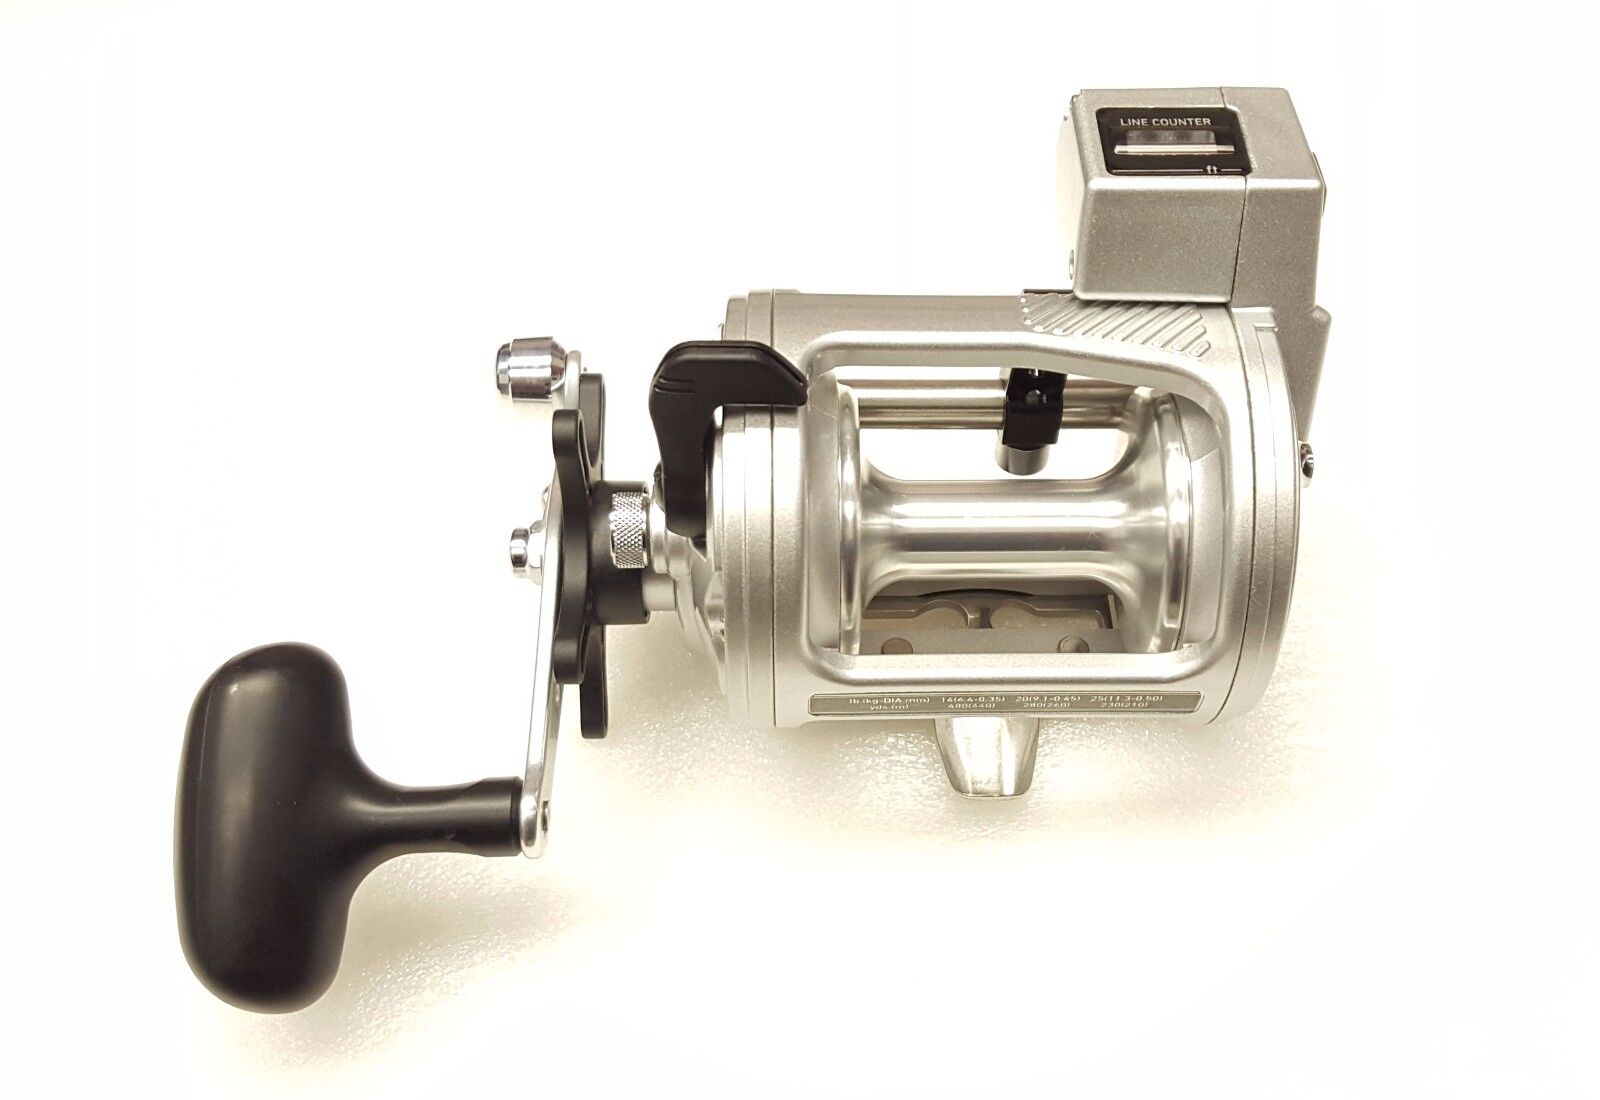 Daiwa Accudepth Plus-B 4.2:1 Line Counter Casting Casting Counter Fishing Reel, Left - ADP47LCBL 146d73